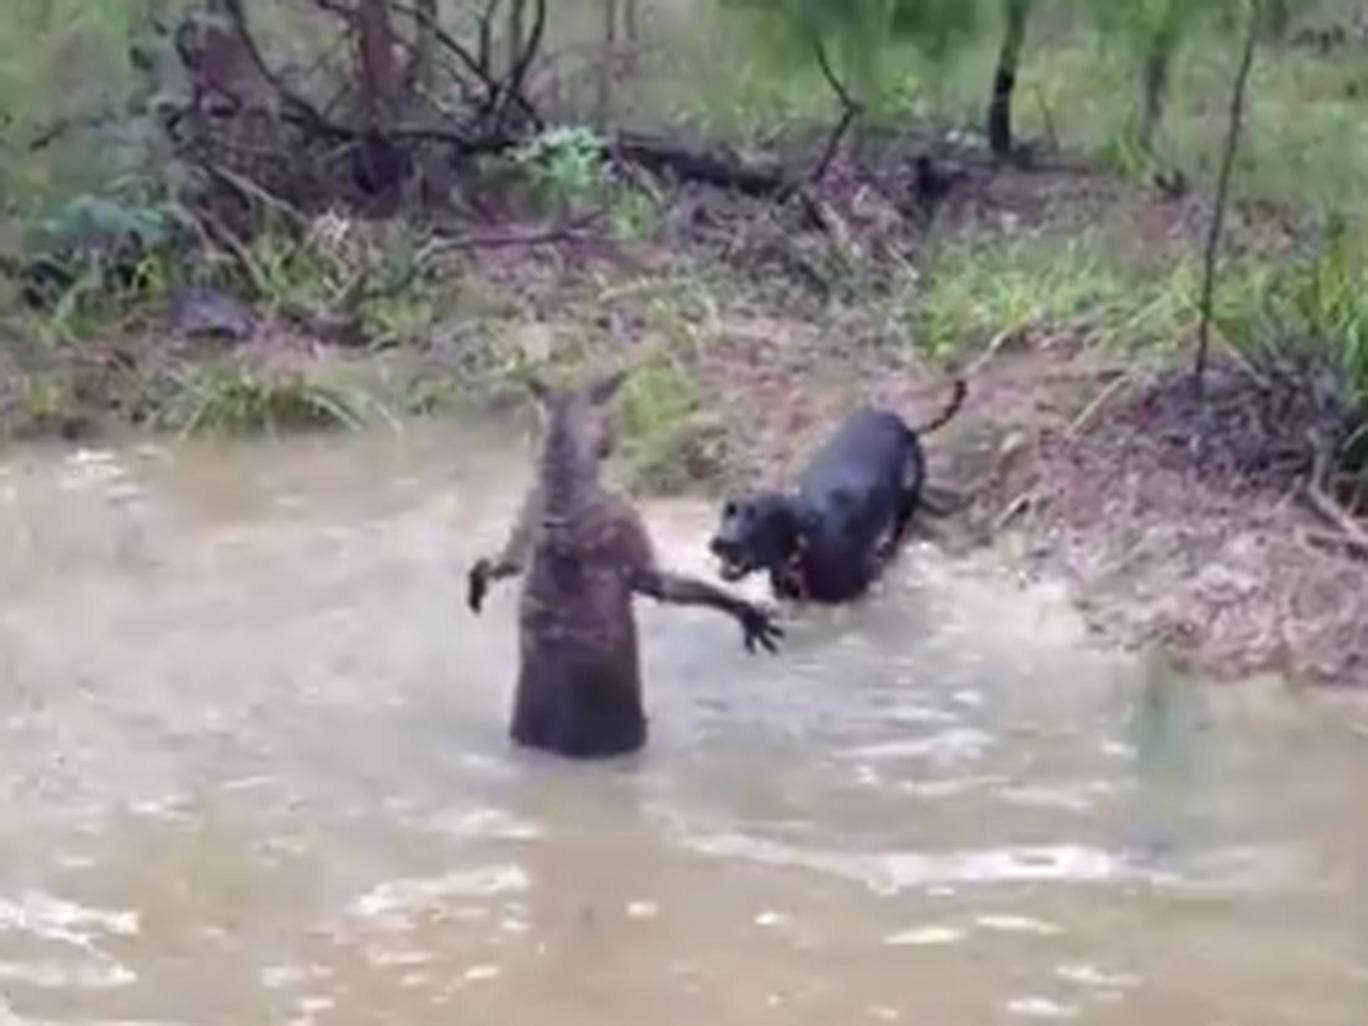 """A video with the ominous title """"Kangaroo Tries to Drown Dog"""" has sparked controversy in Australia"""